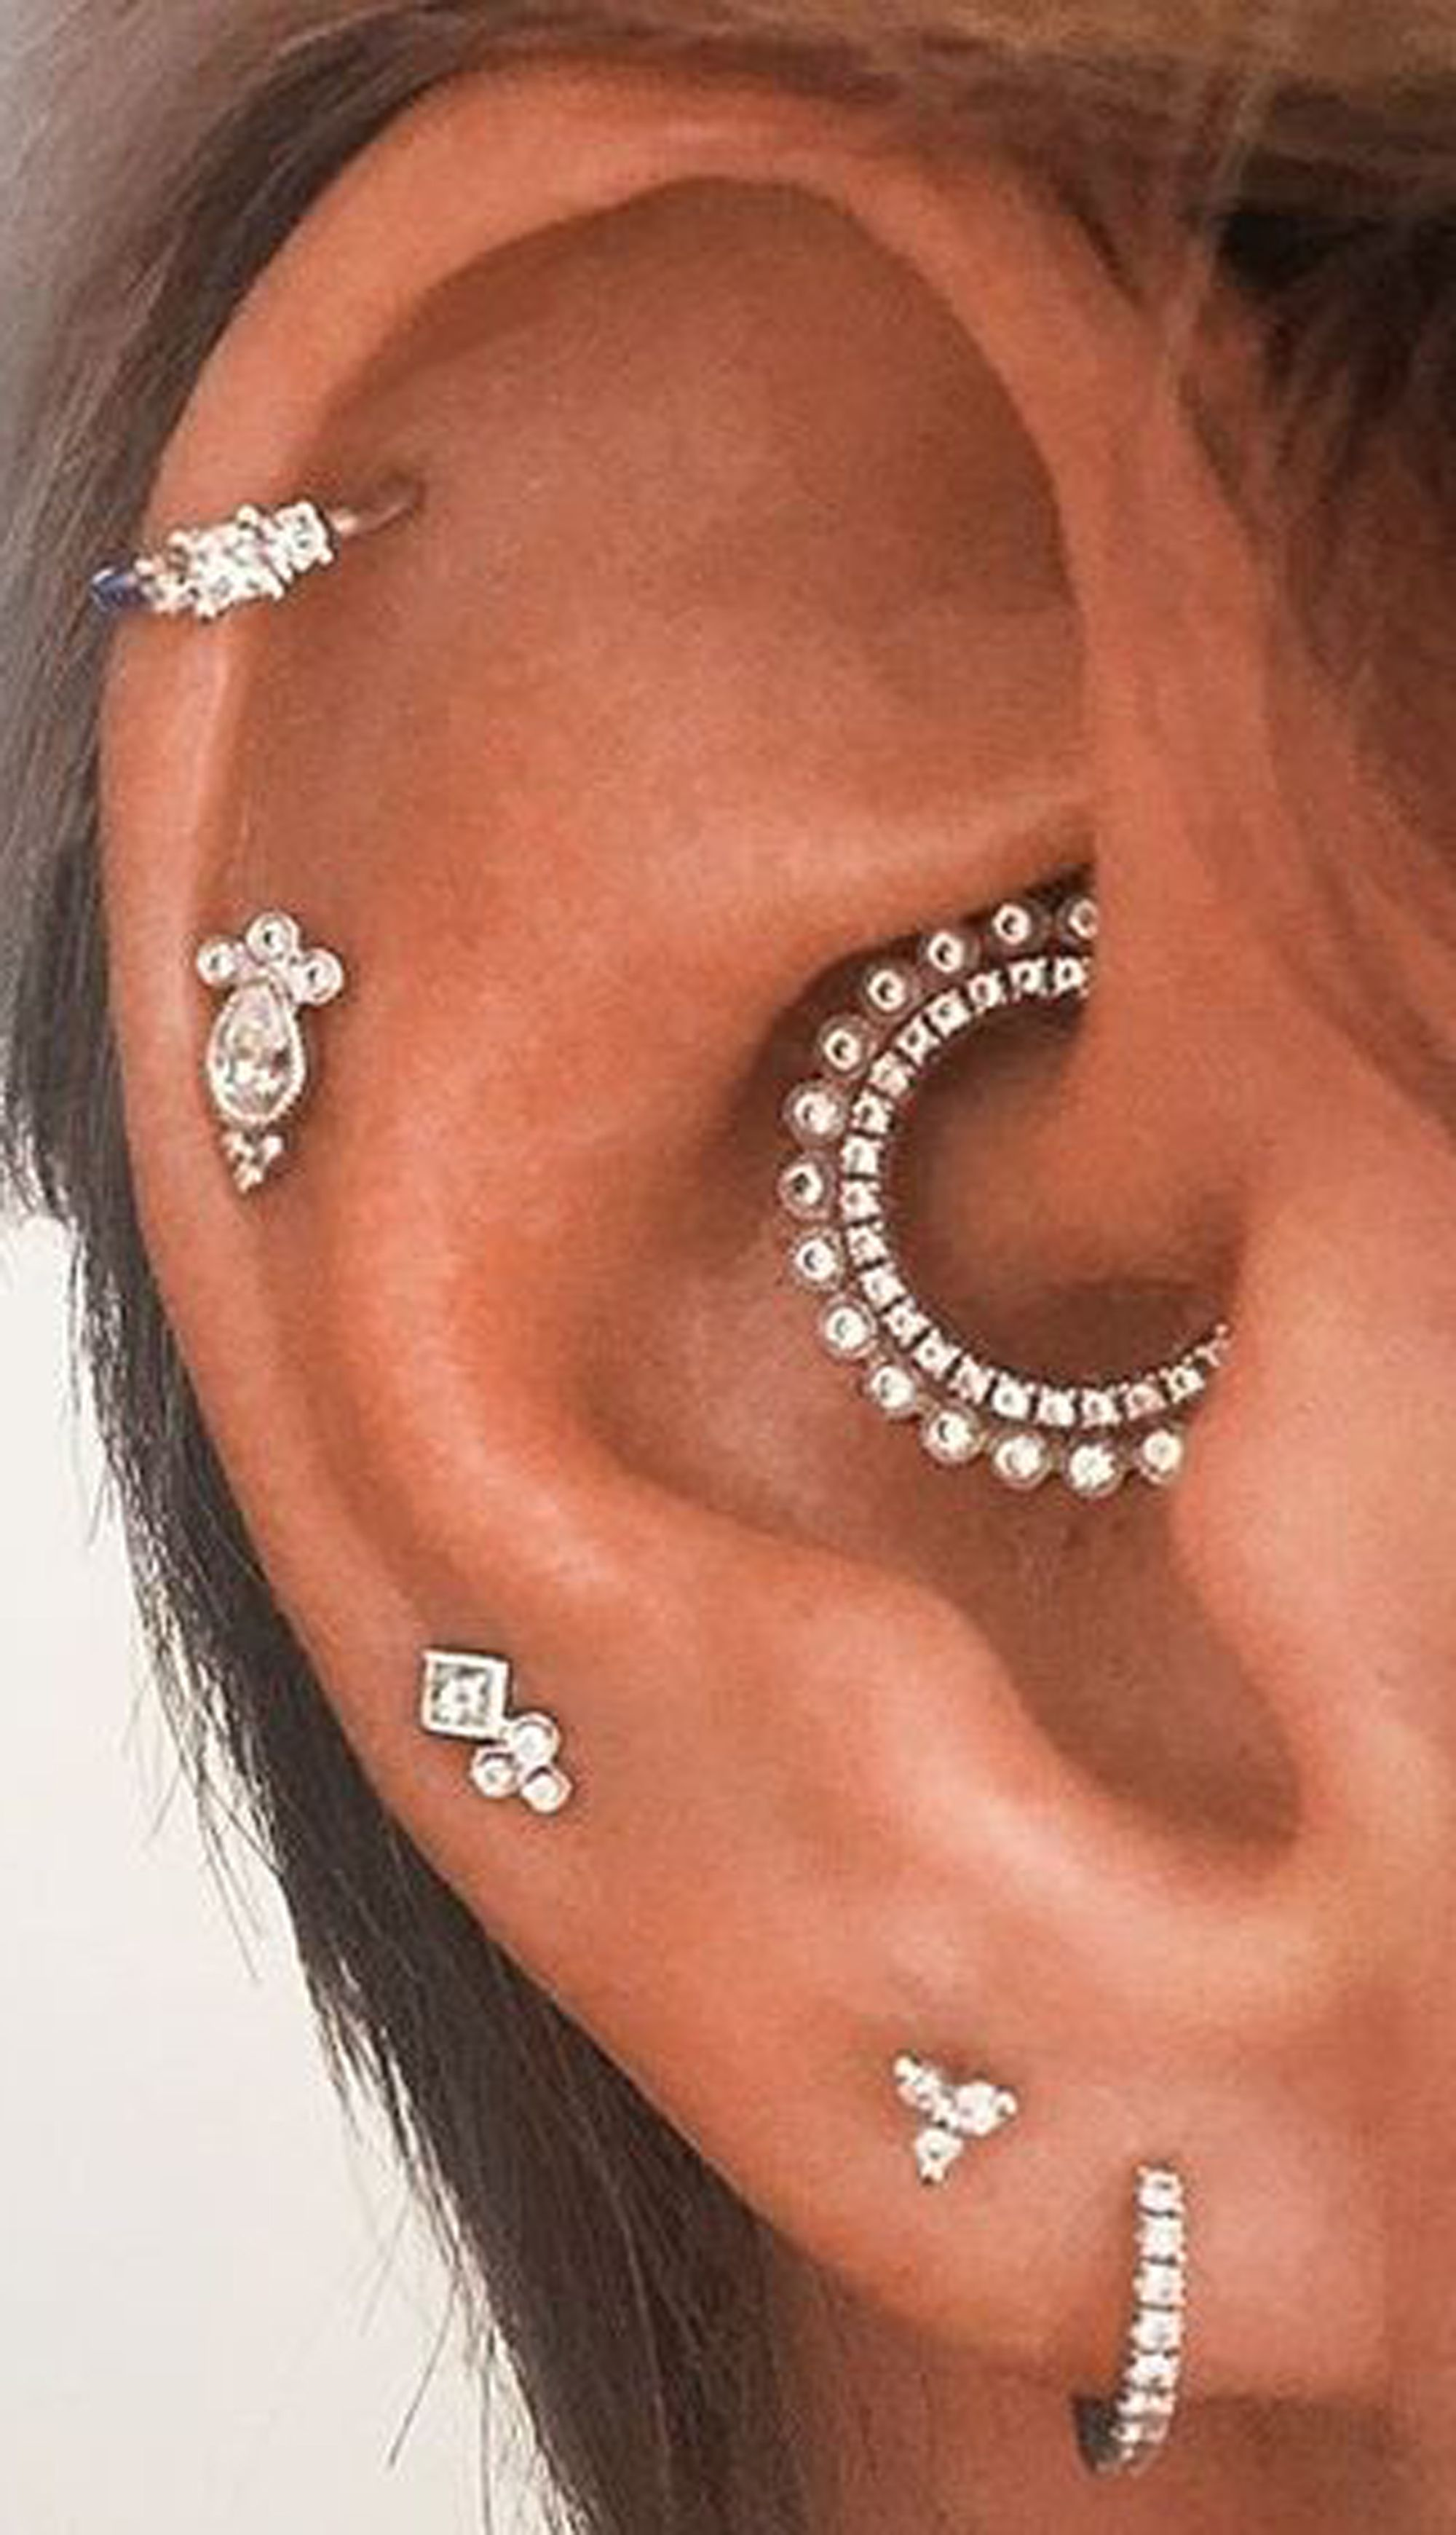 Cute Multiple Ear Piercing Ideas For Cartilage Helix Daith